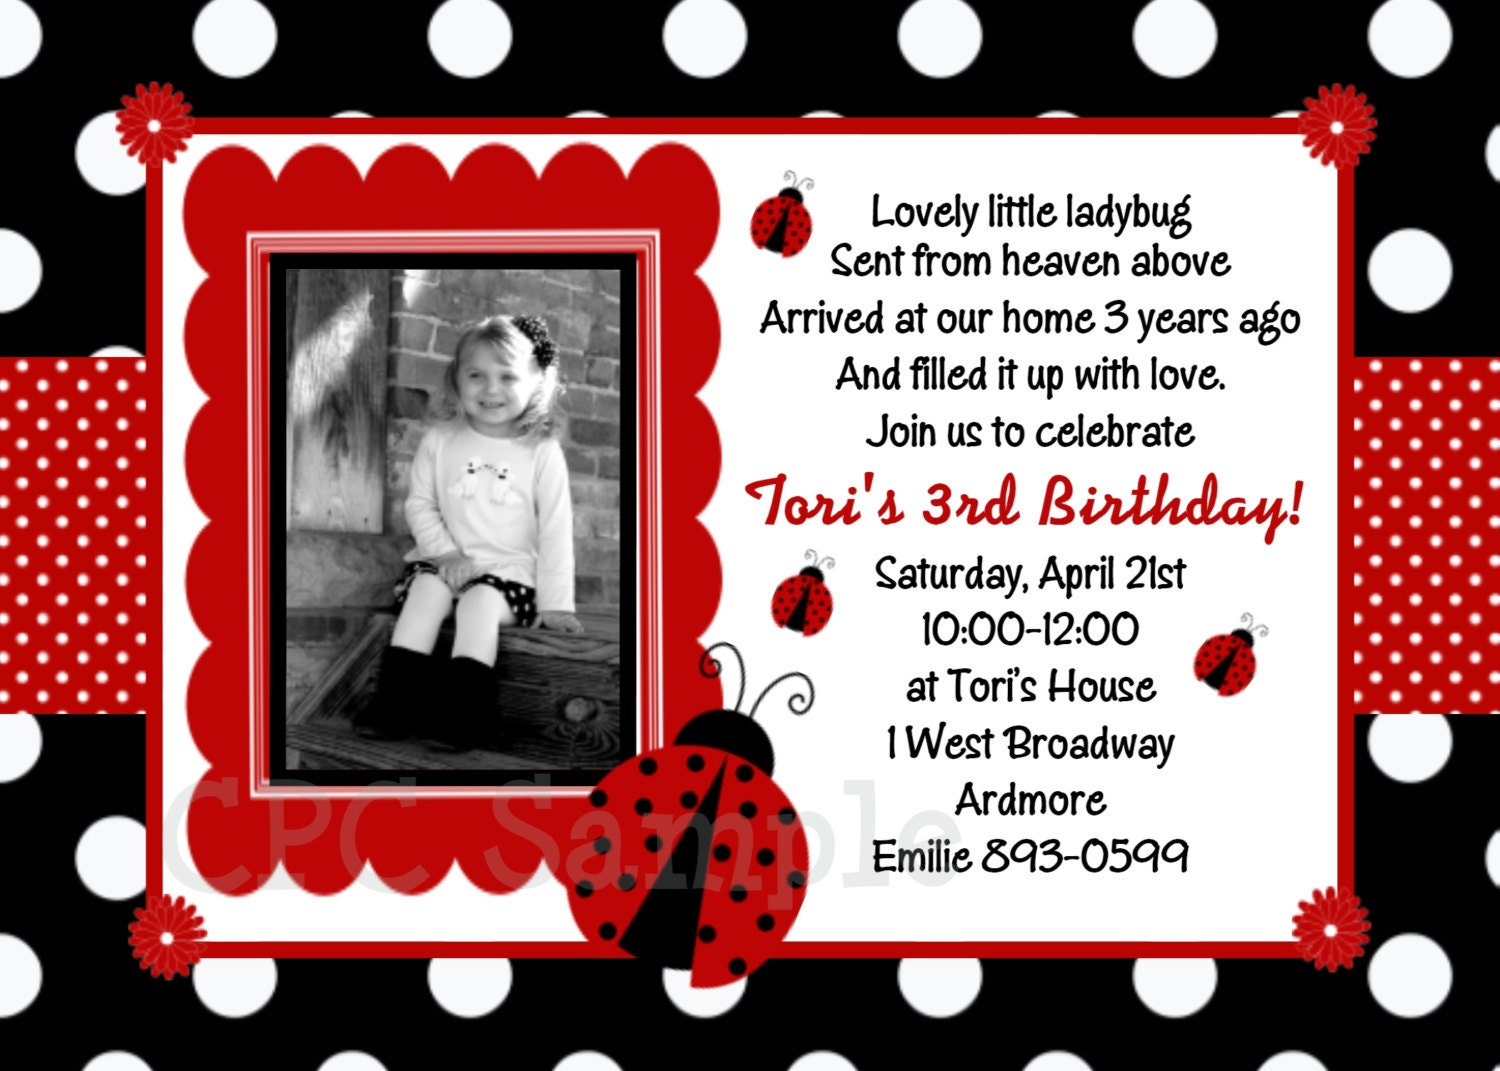 Ladybug Invitation Ladybug Party Birthday Invitations – Ladybug Invitations 1st Birthday